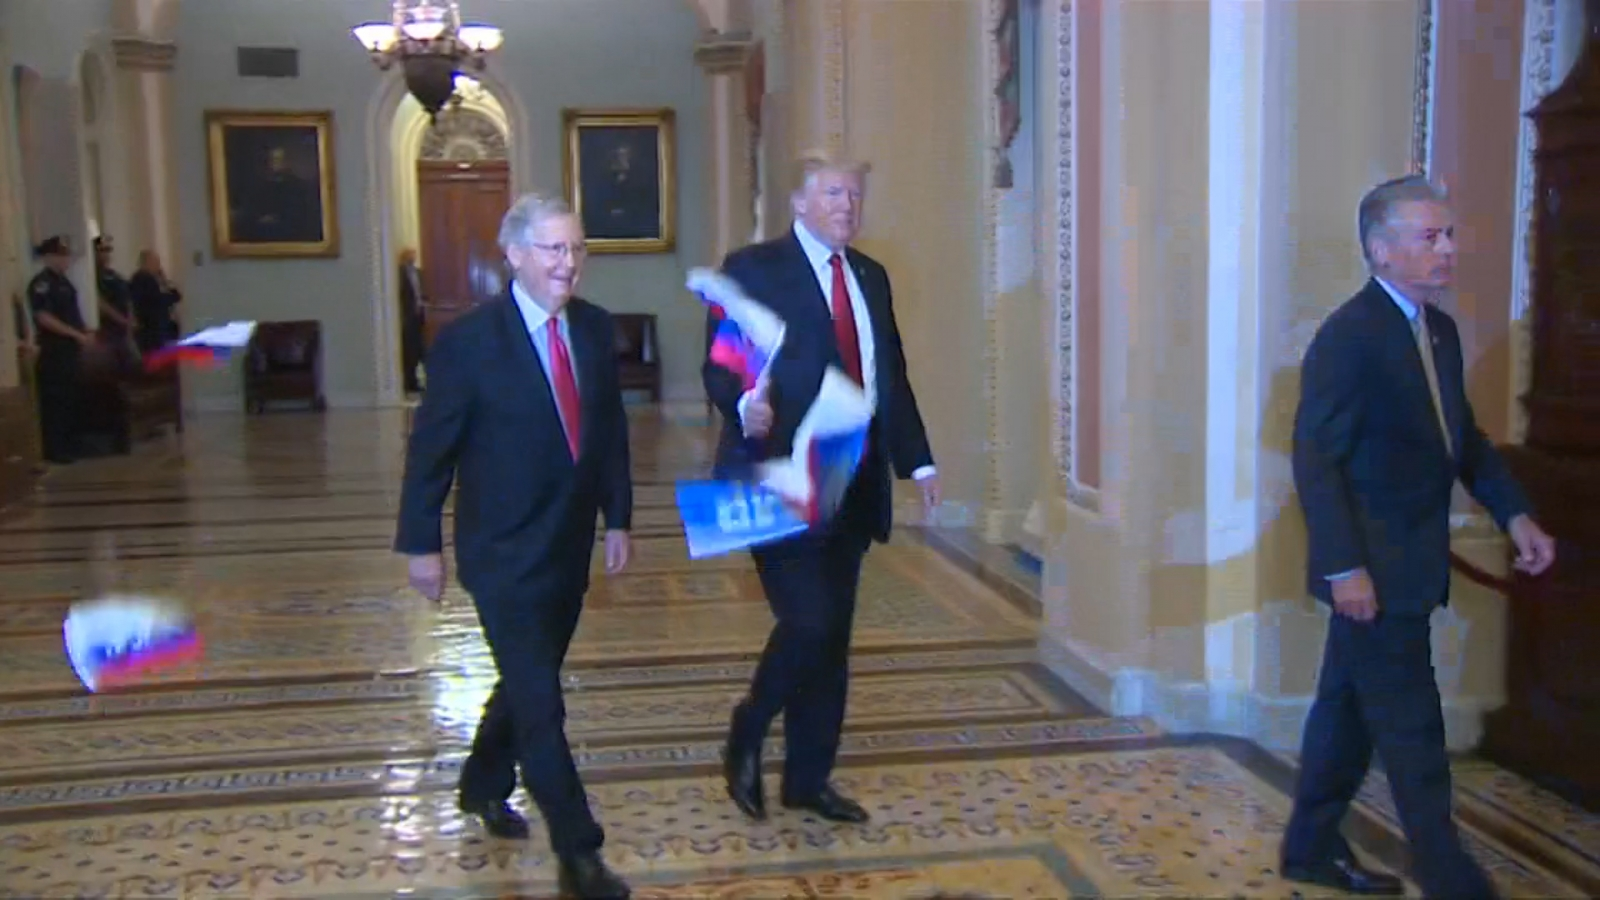 russian-flags-thrown-at-president-trump-ahead-of-capitol-hill-meeting-with-senators